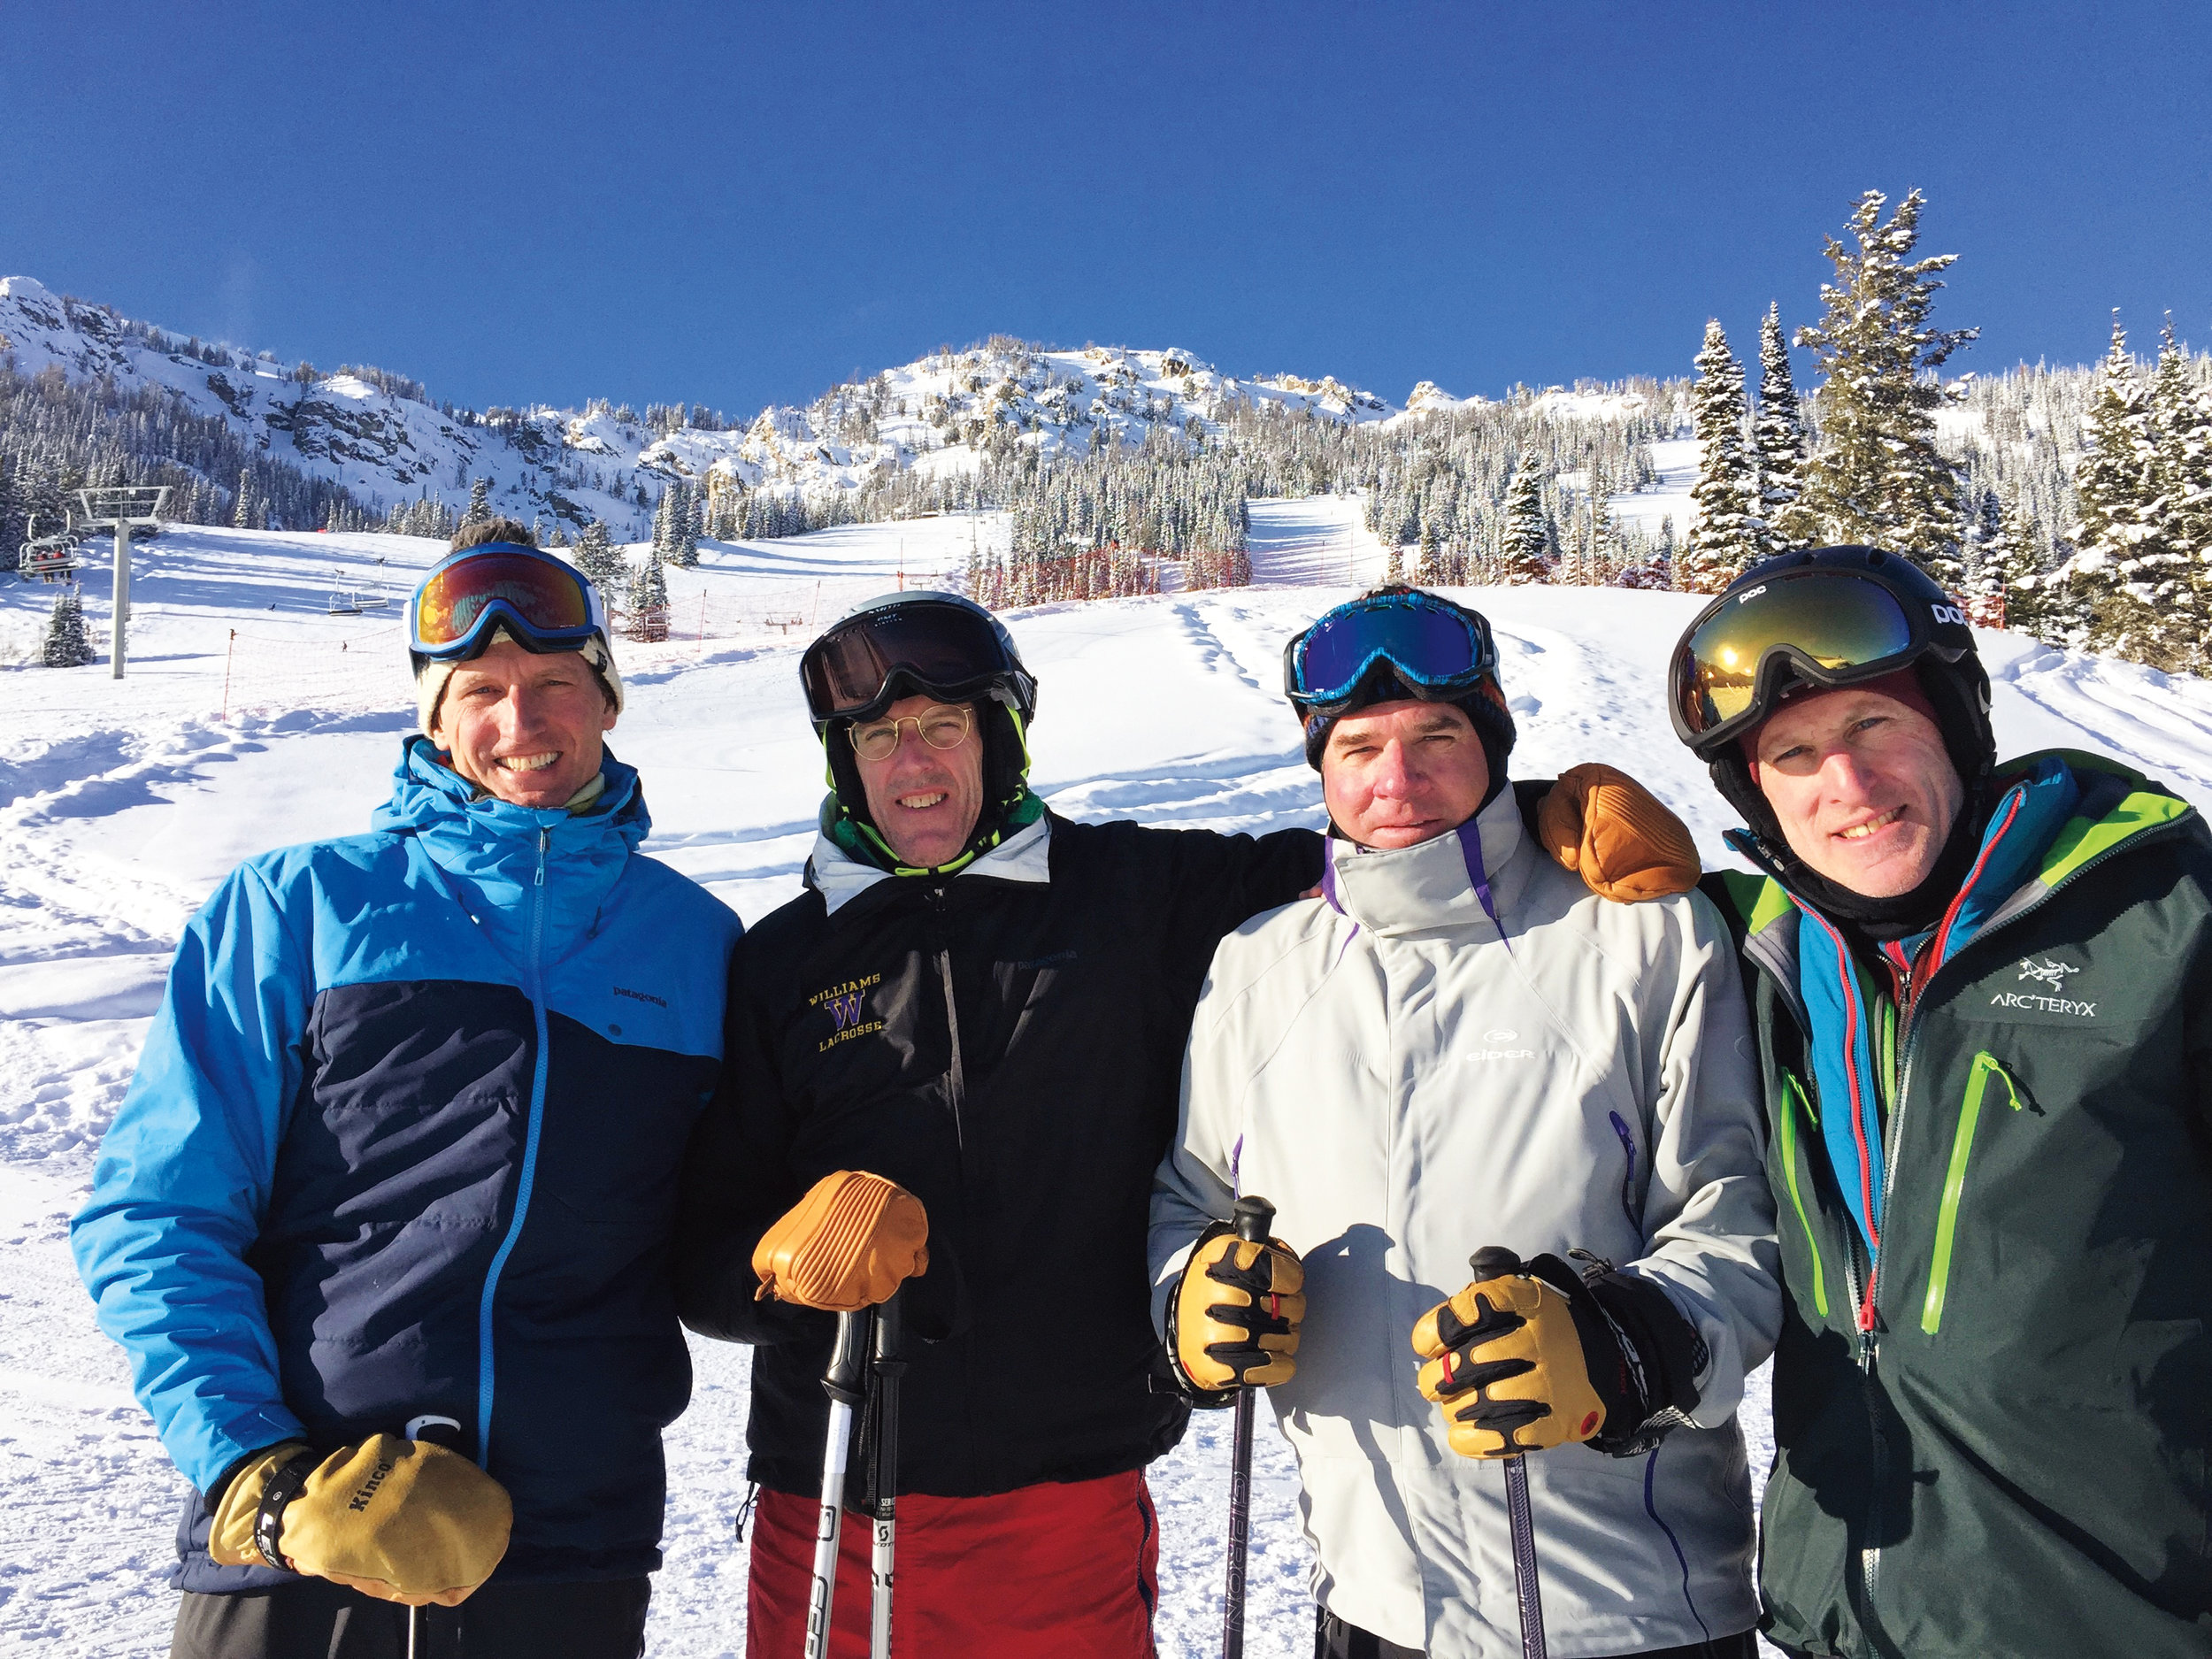 Ski buddies (l. to r.) Biddle Duke '81, Rob Fowler '81, Andrew Binger '81, and Gus Wilmerding '82 hit the slopes in Jackson Hole, Wyo.